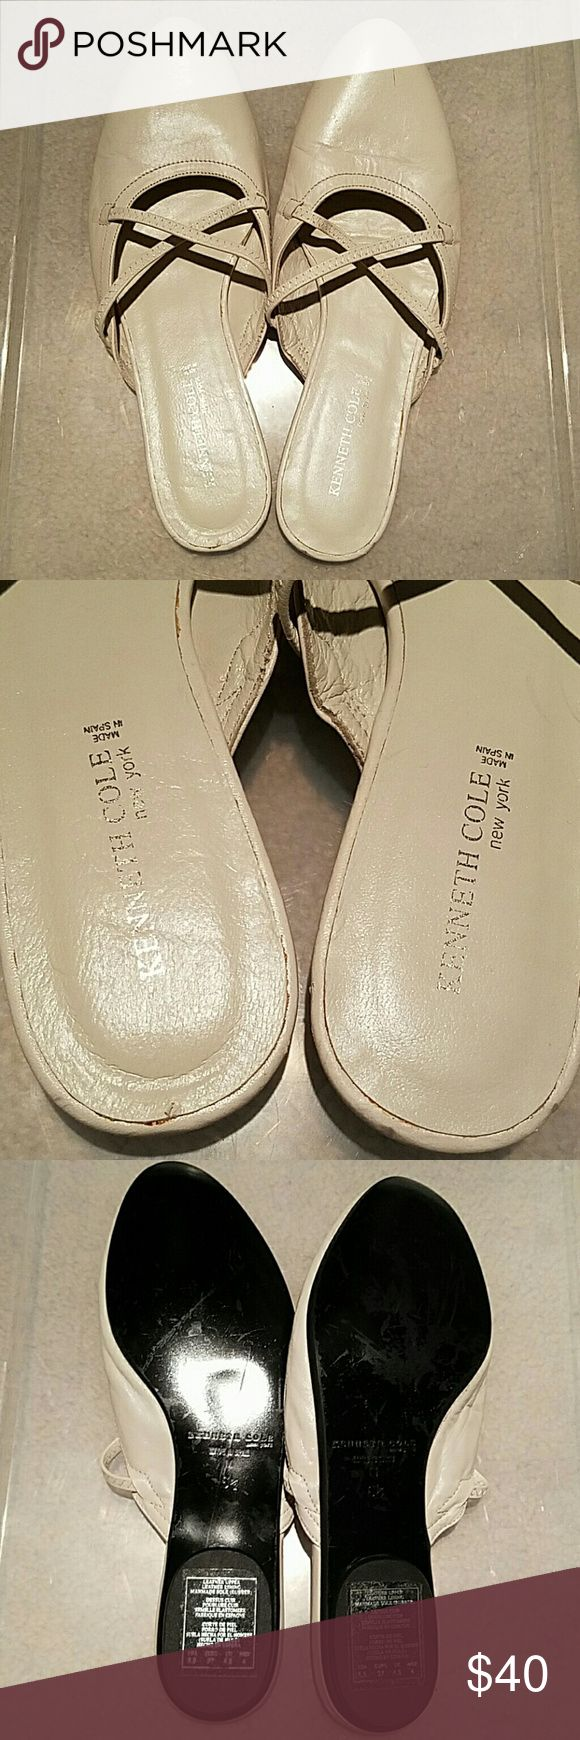 Kenneth Cole Slip On Flat Slippers Flat Slip-On / Slipper. KENNETH COLE. Cream Leather. Leather Upper. Leather Lining. New York. Man-Made Sole (Rubber). Size: 6.5 [Medium] (US), MAKE OFFER! Kenneth Cole Shoes Slippers